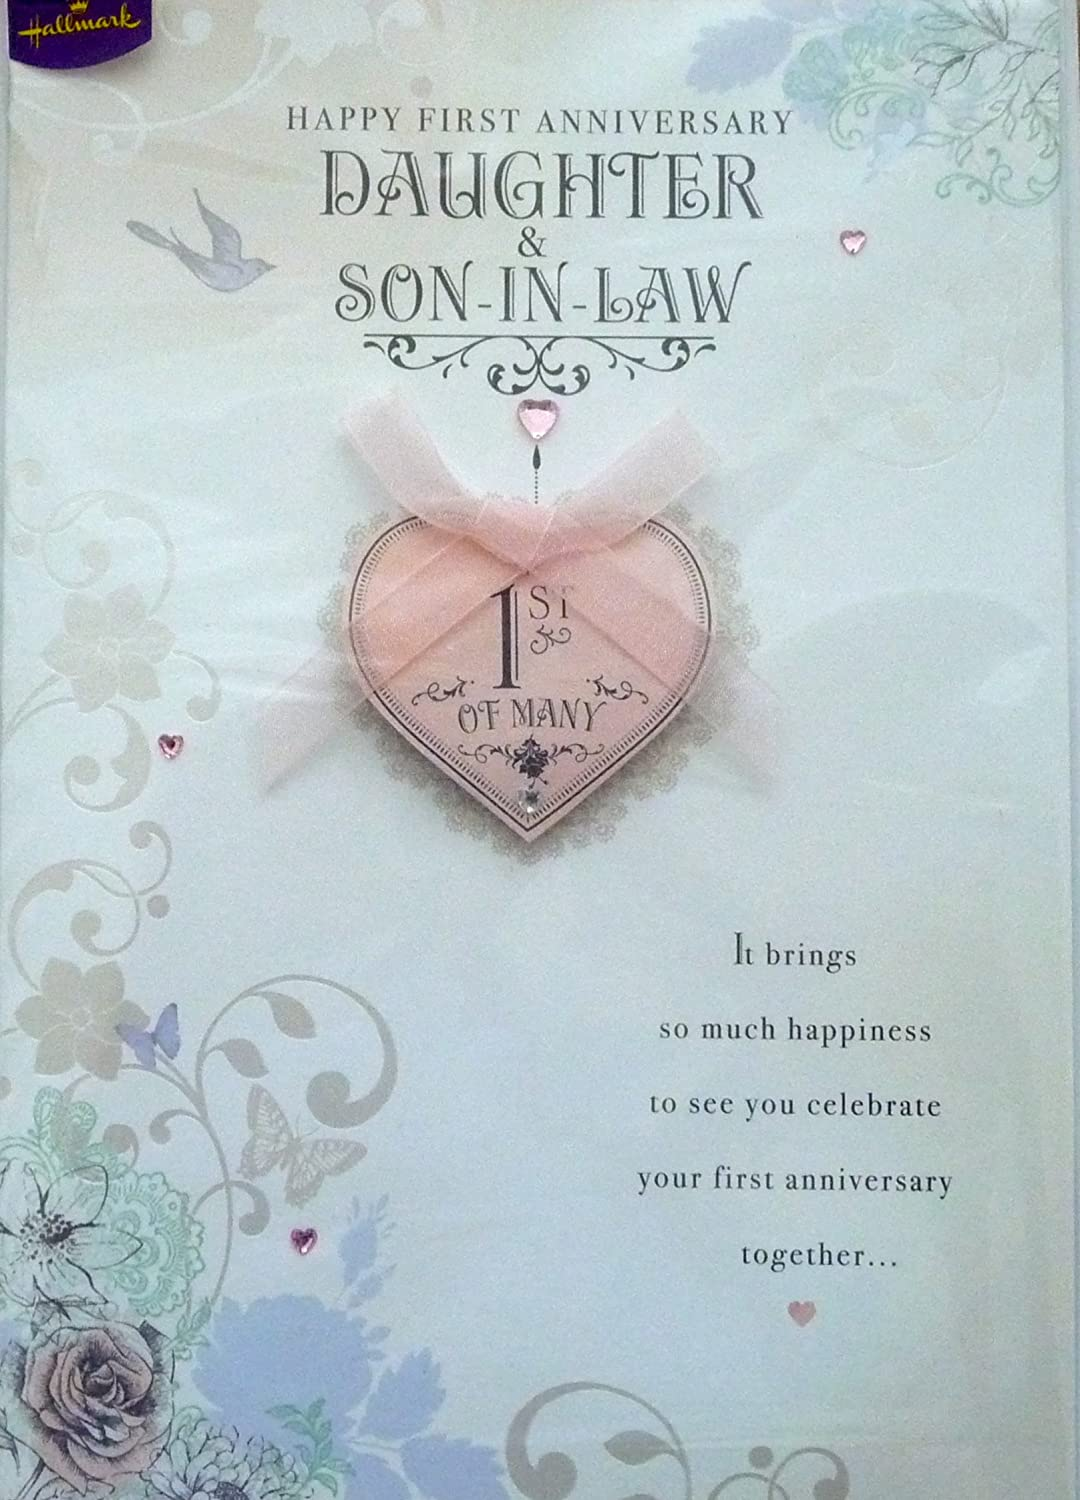 1st Wedding Anniversary Gift For Daughter And Son In Law : Marriage Anniversary Quotes For Daughter And Son In Law. QuotesGram